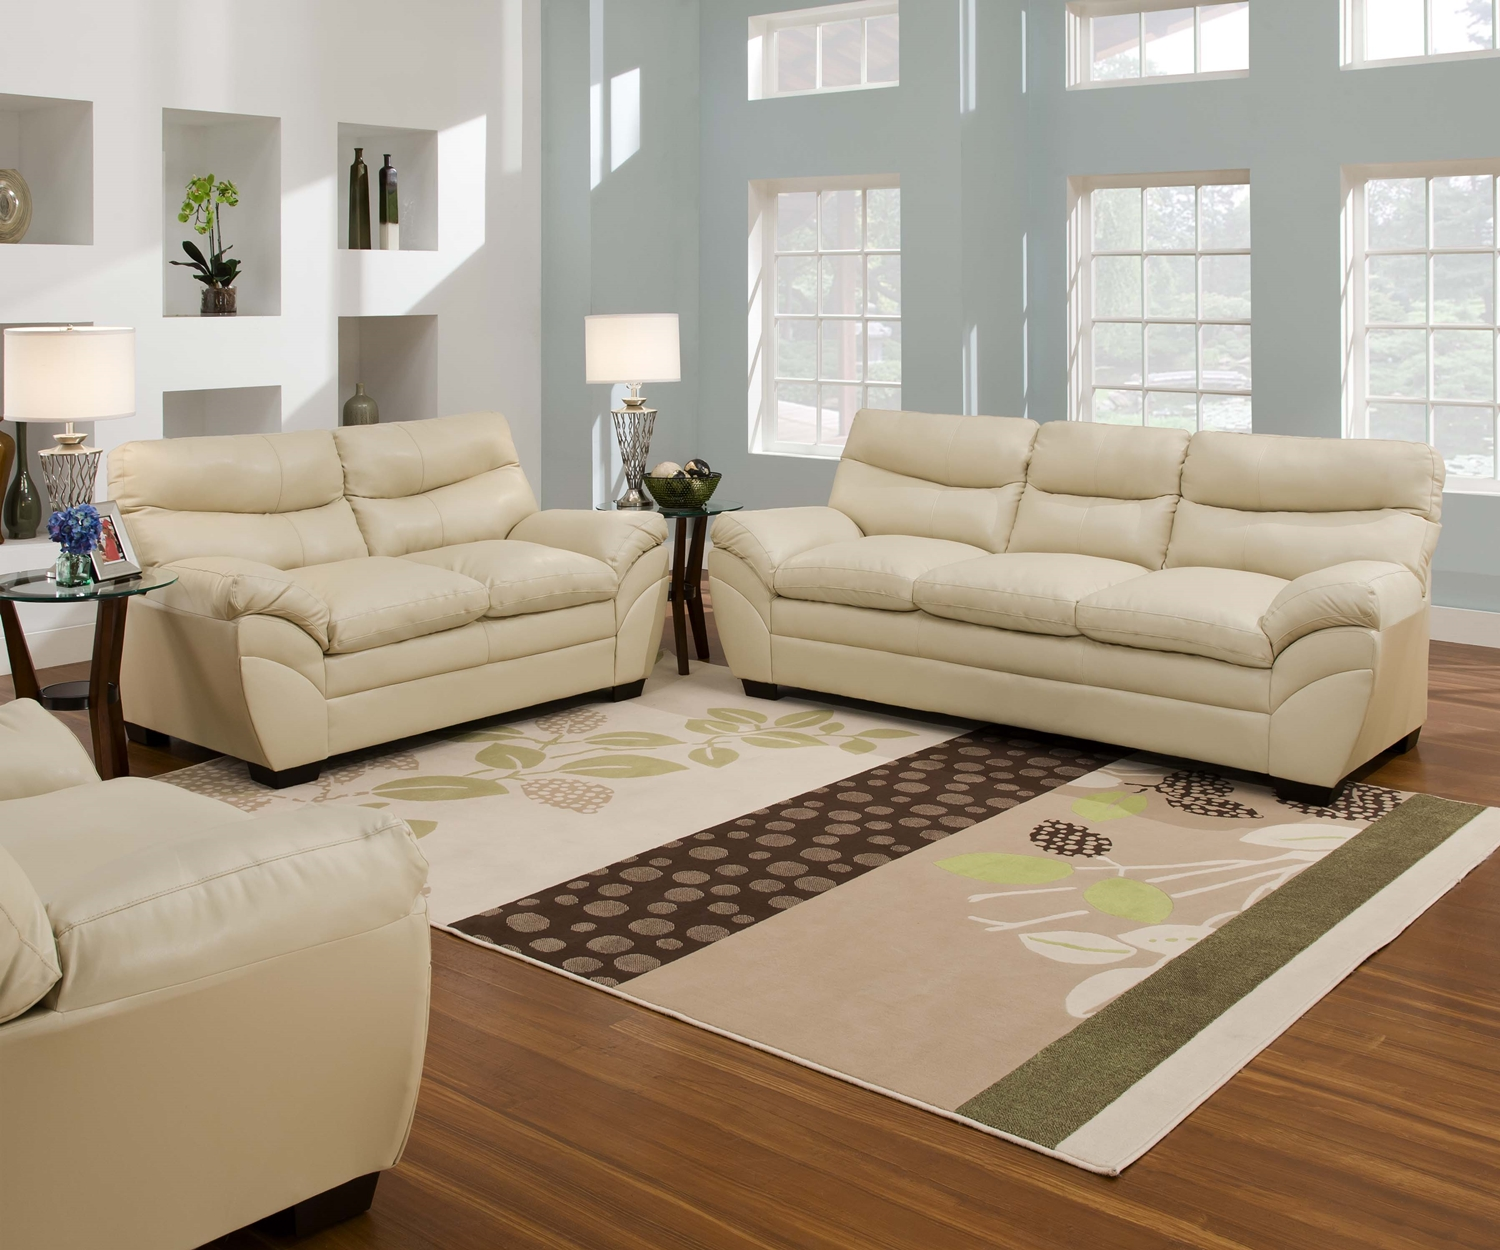 Cream Living Room Furniture Modern House